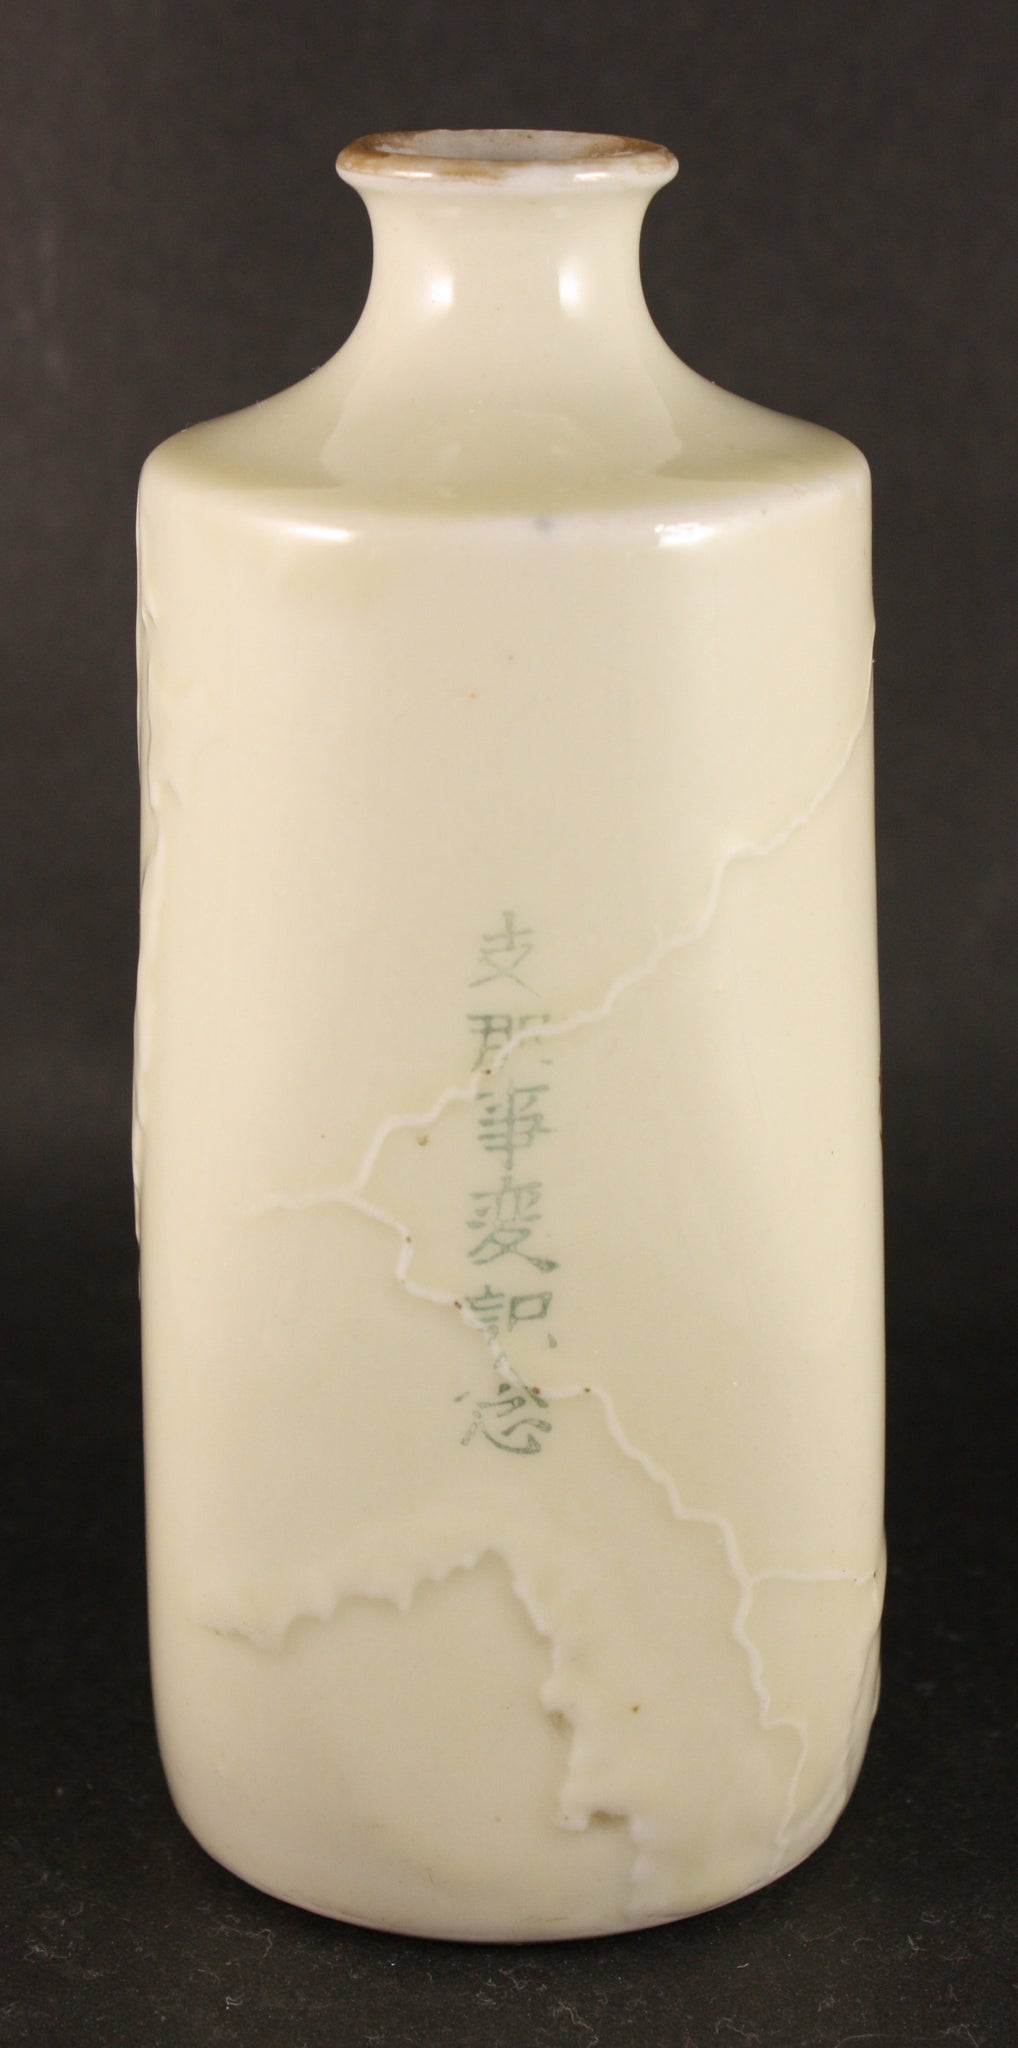 Rare Antique Japanese Military China Incident East Asia Map Army Sake Bottle